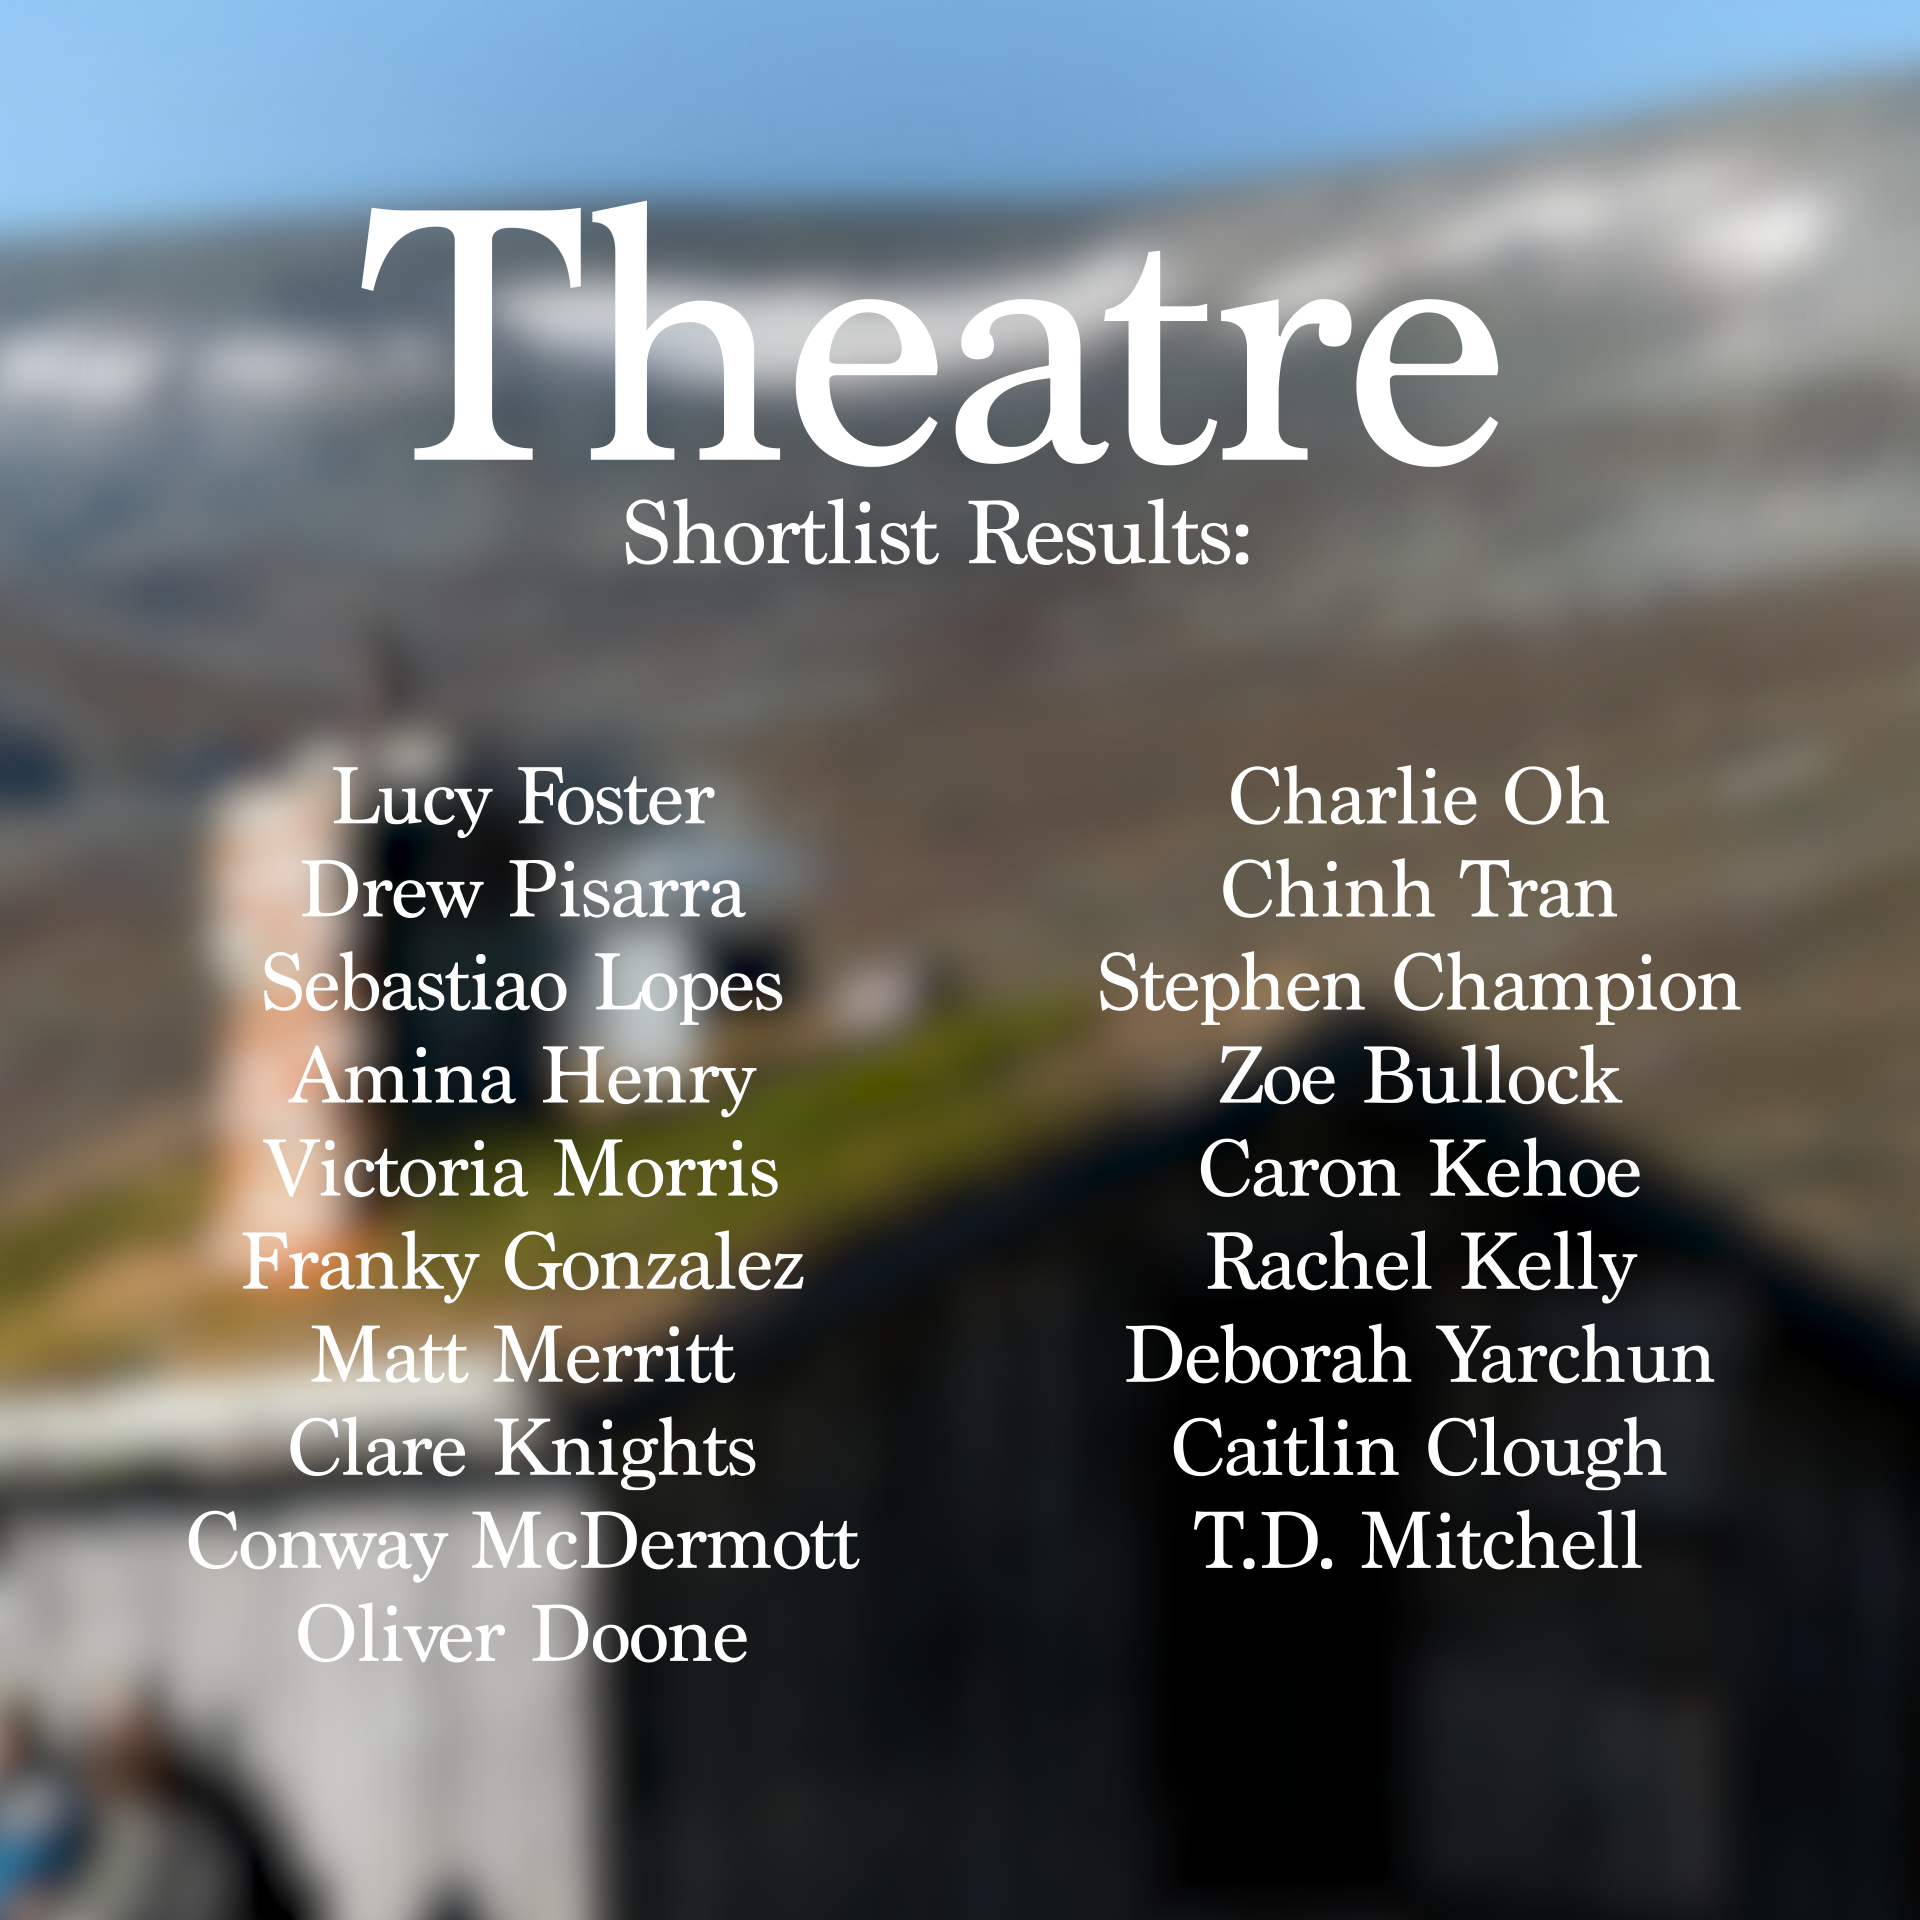 Theatre_02 (0-00-00-00)_1.png